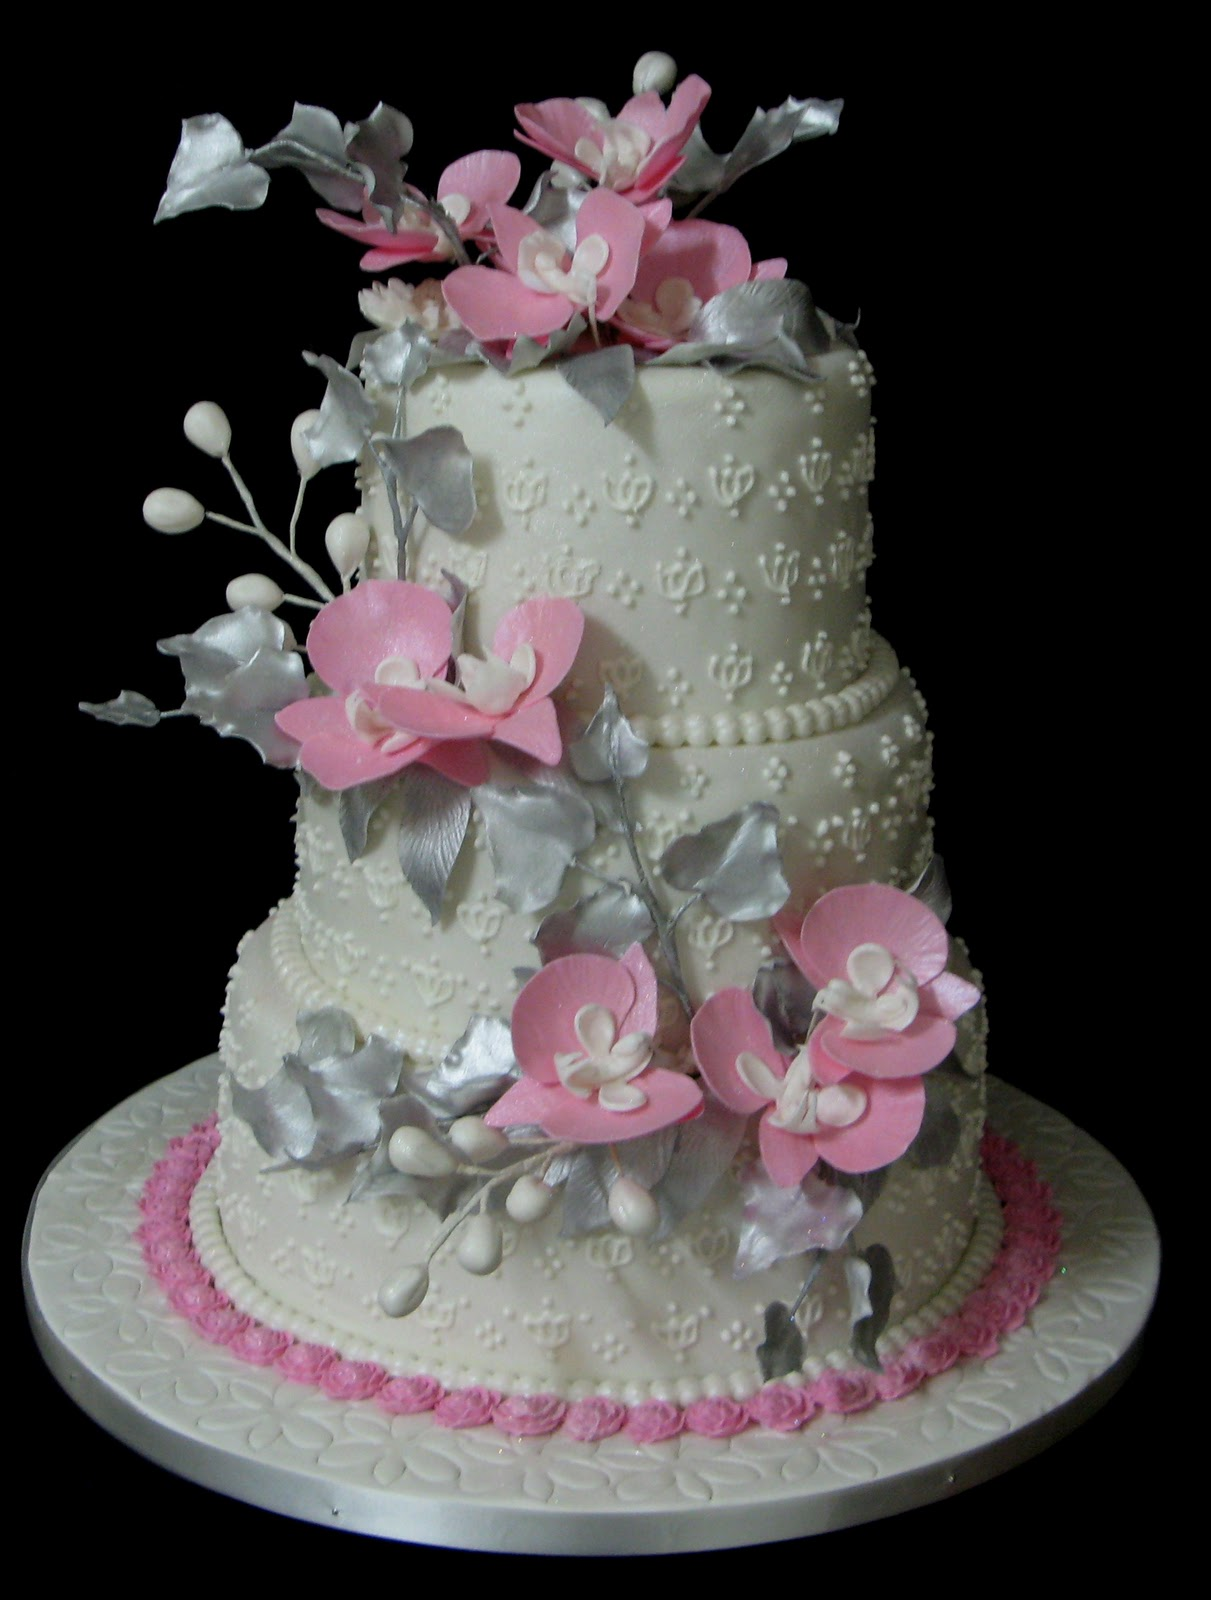 Sugarcraft by soni three tier wedding cake silver leaves and pink this cake was made for a bride from gaborone whose wedding theme was sliver pink and white quite a learning curve on balancing the flowers and leaves on mightylinksfo Image collections